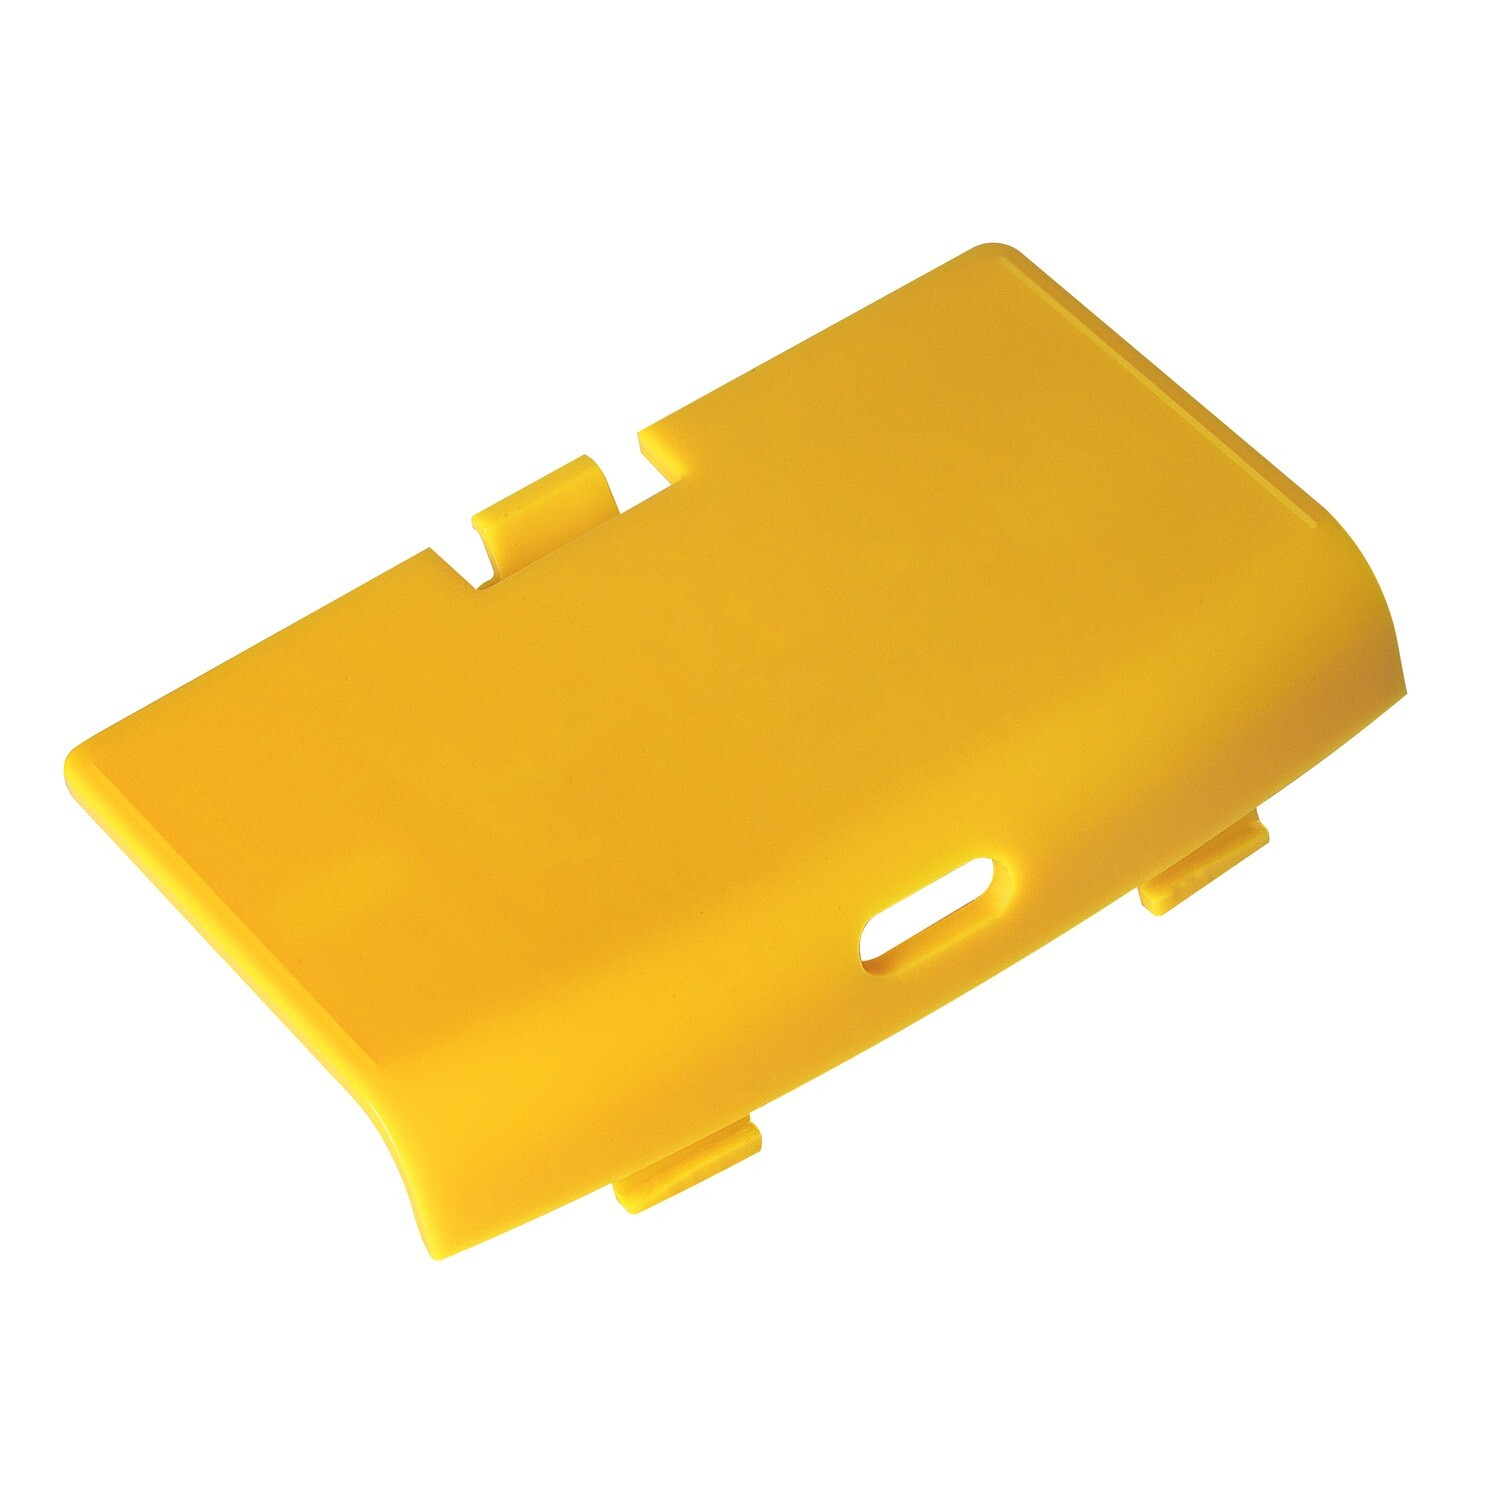 Game Boy Advance USB-C Battery Cover (Yellow)